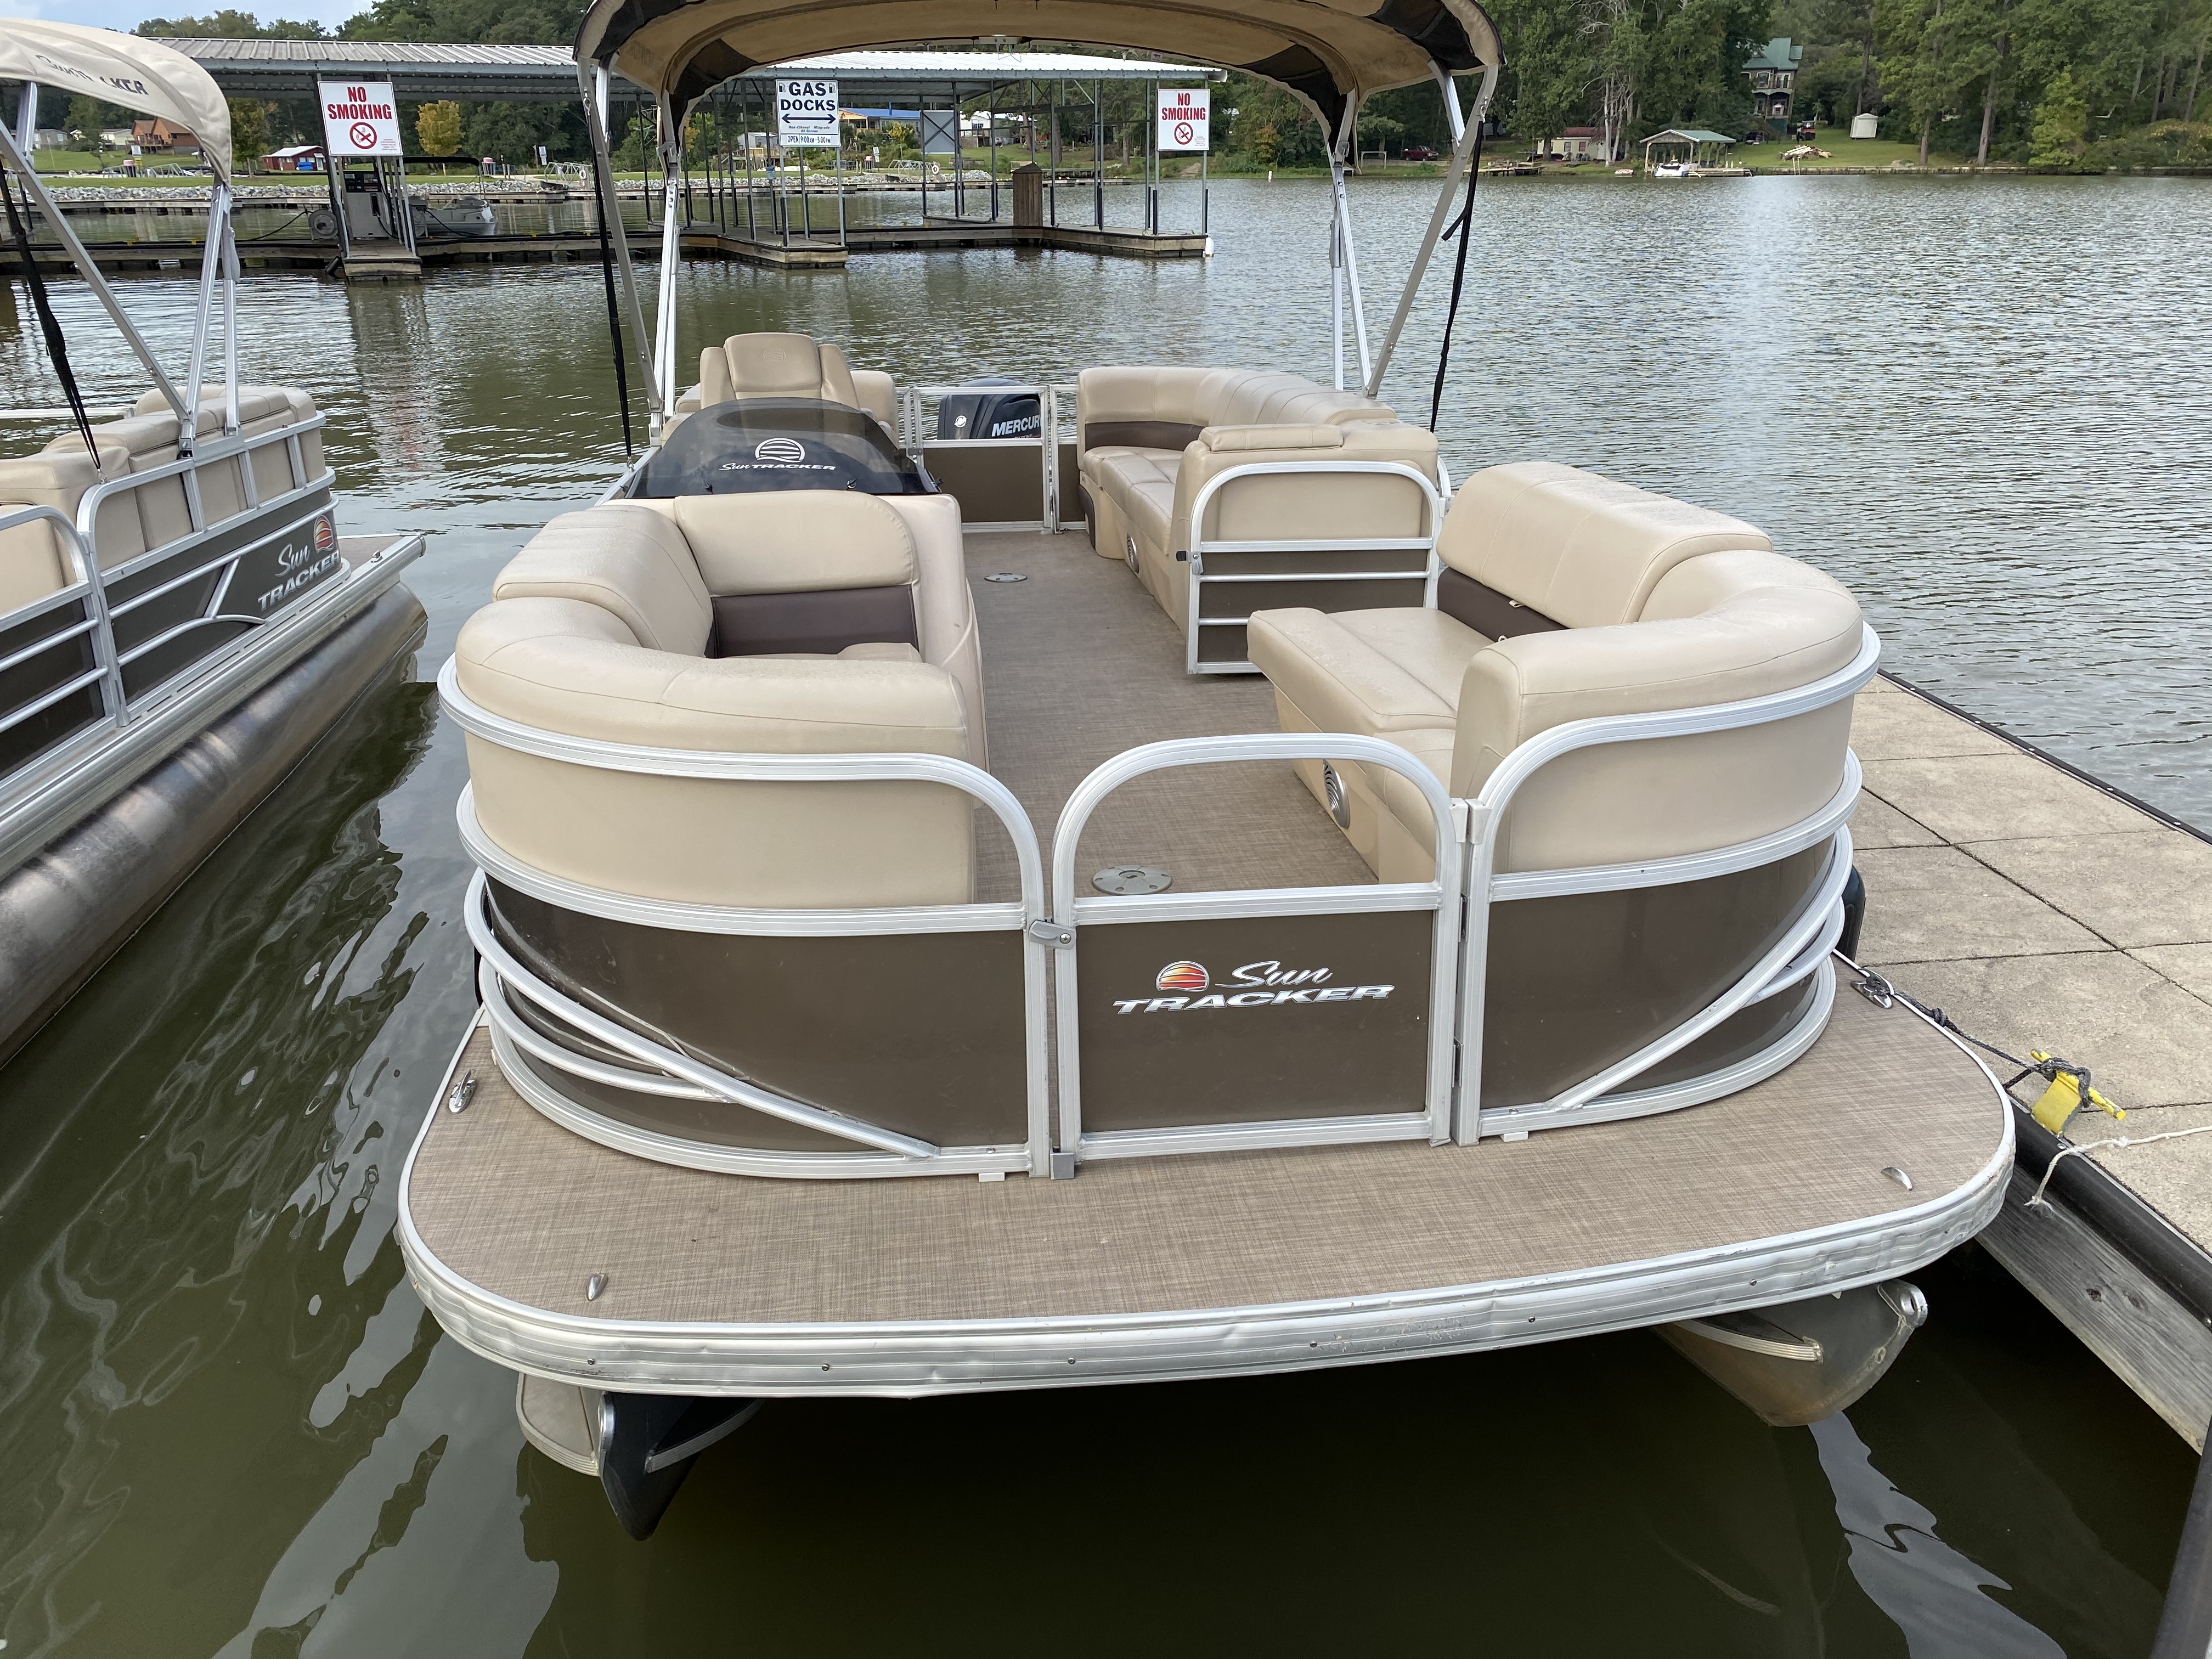 2019 Sun Tracker boat for sale, model of the boat is PARTY BARGE 22 w/ Mercury 115Hp 4S & Image # 1 of 21